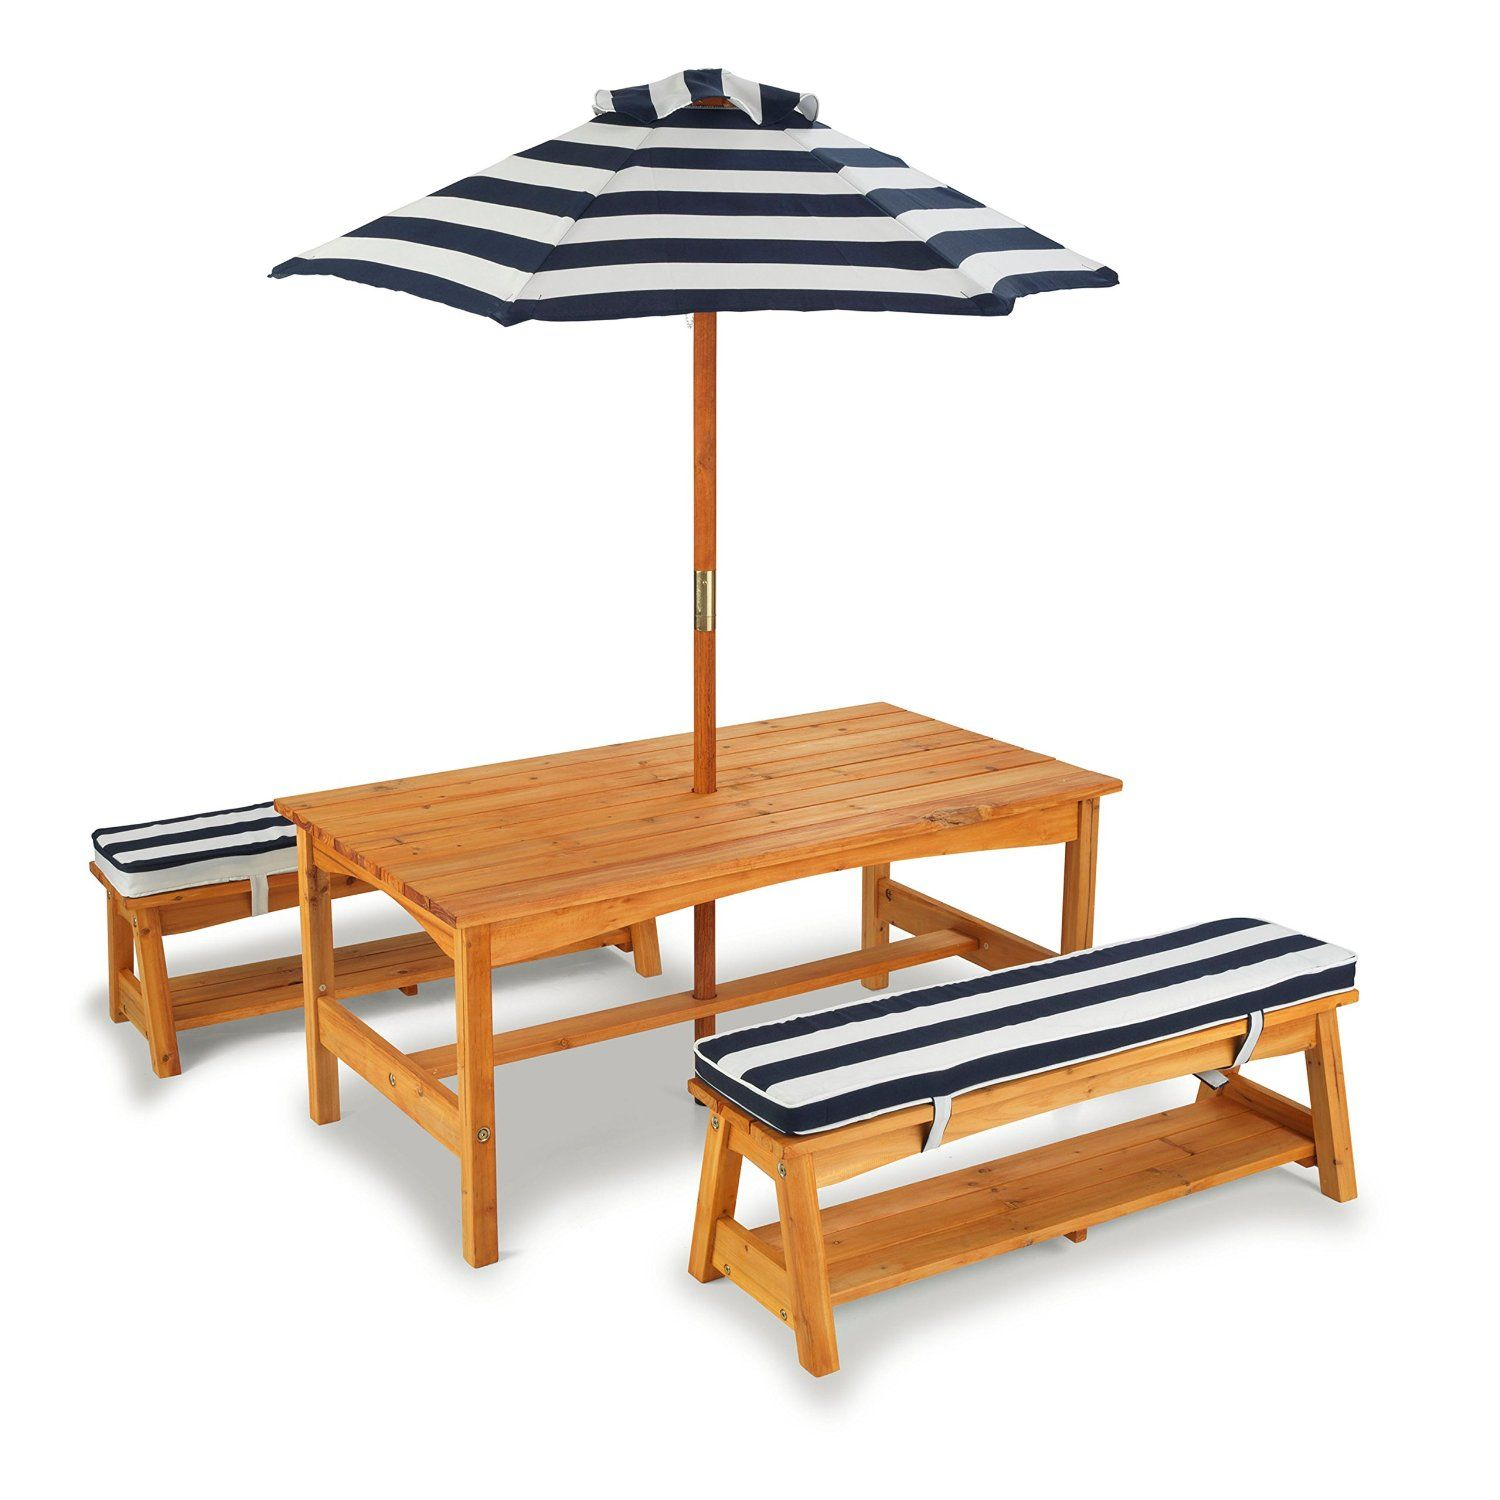 Outdoor Pool Furniture Patio Dining Walmart Chair Cushions Teak Wicker  Rocking Black And Wooden White Stripe